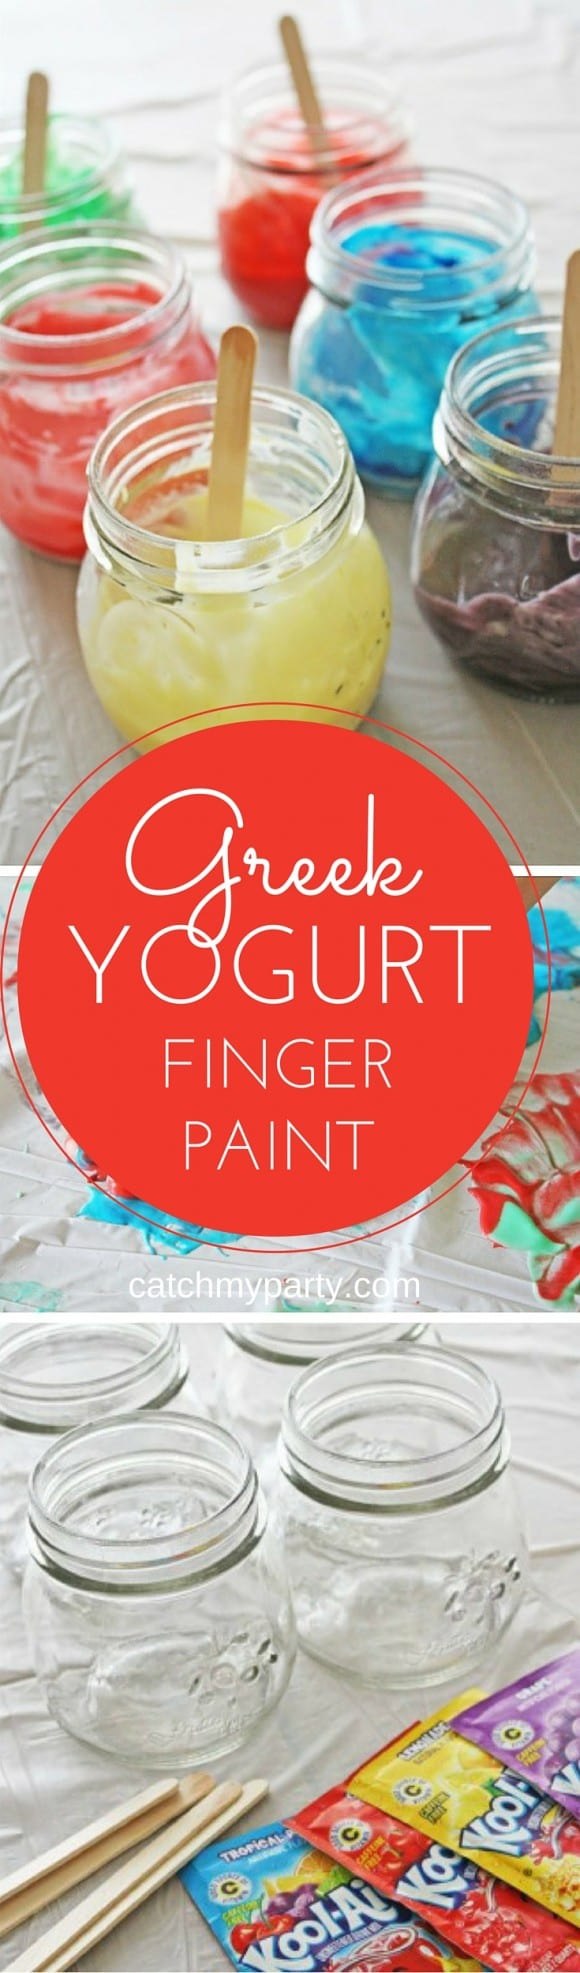 Greek Yogurt Finger Paint | CatchMyParty.com